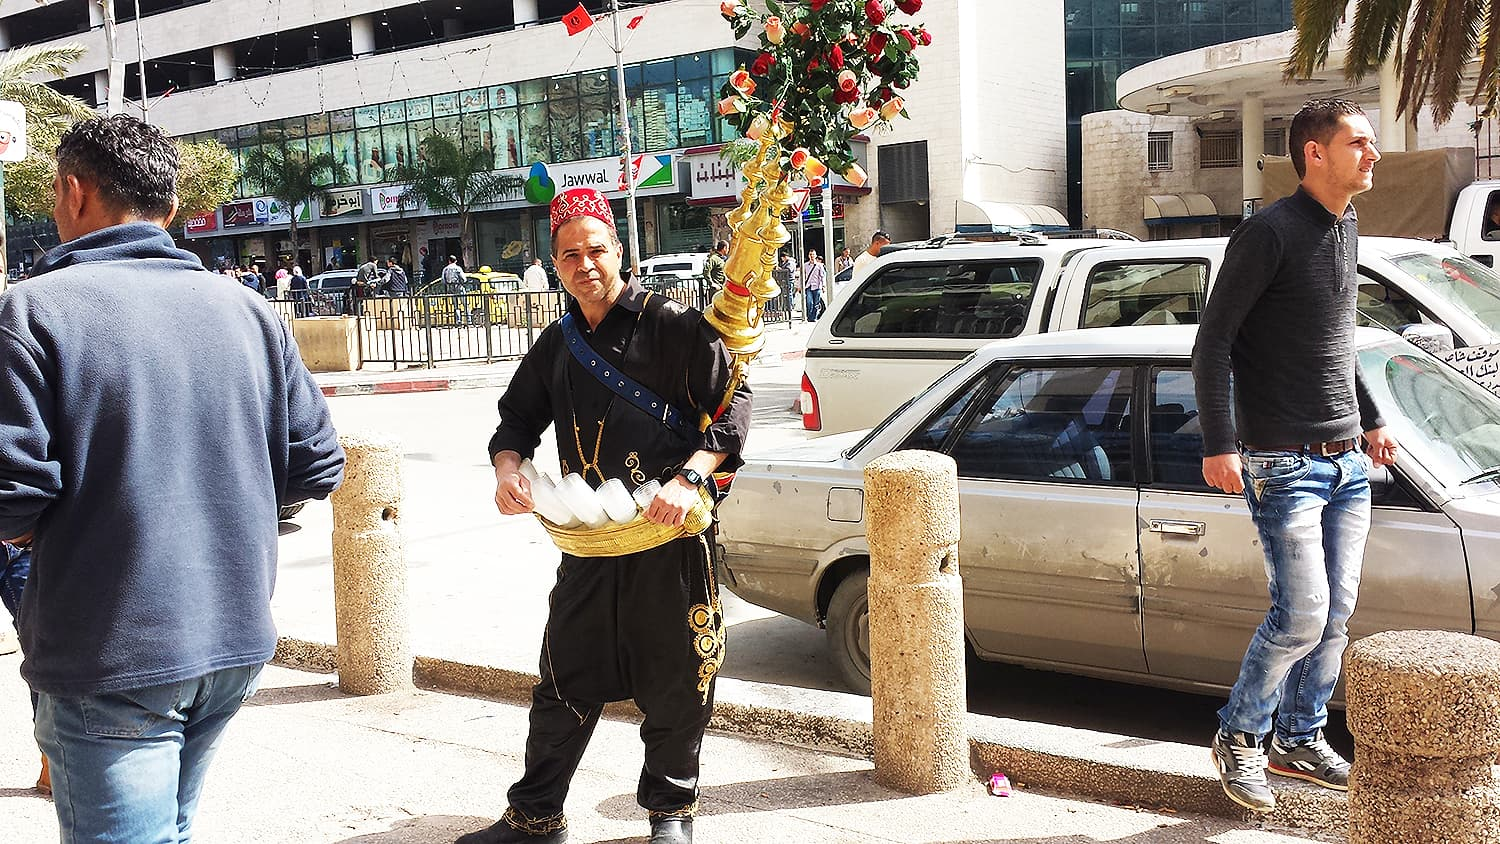 A traditional tea guy in Nablus.